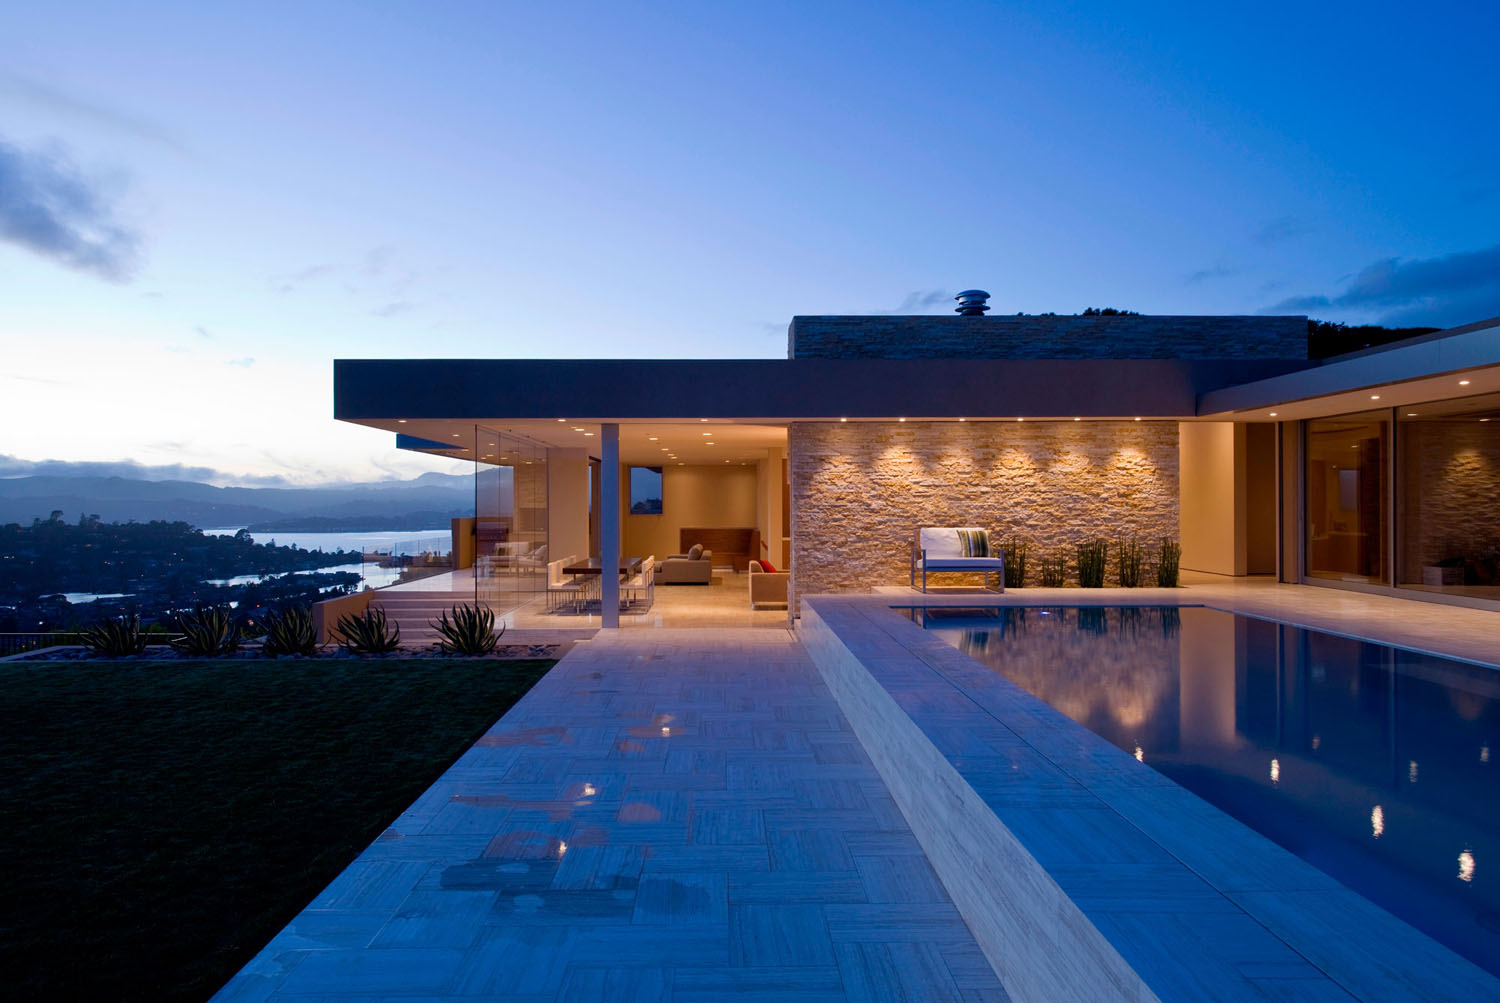 California Modern Architecture Stunning Contemporary Home With View Of San Francisco Bay